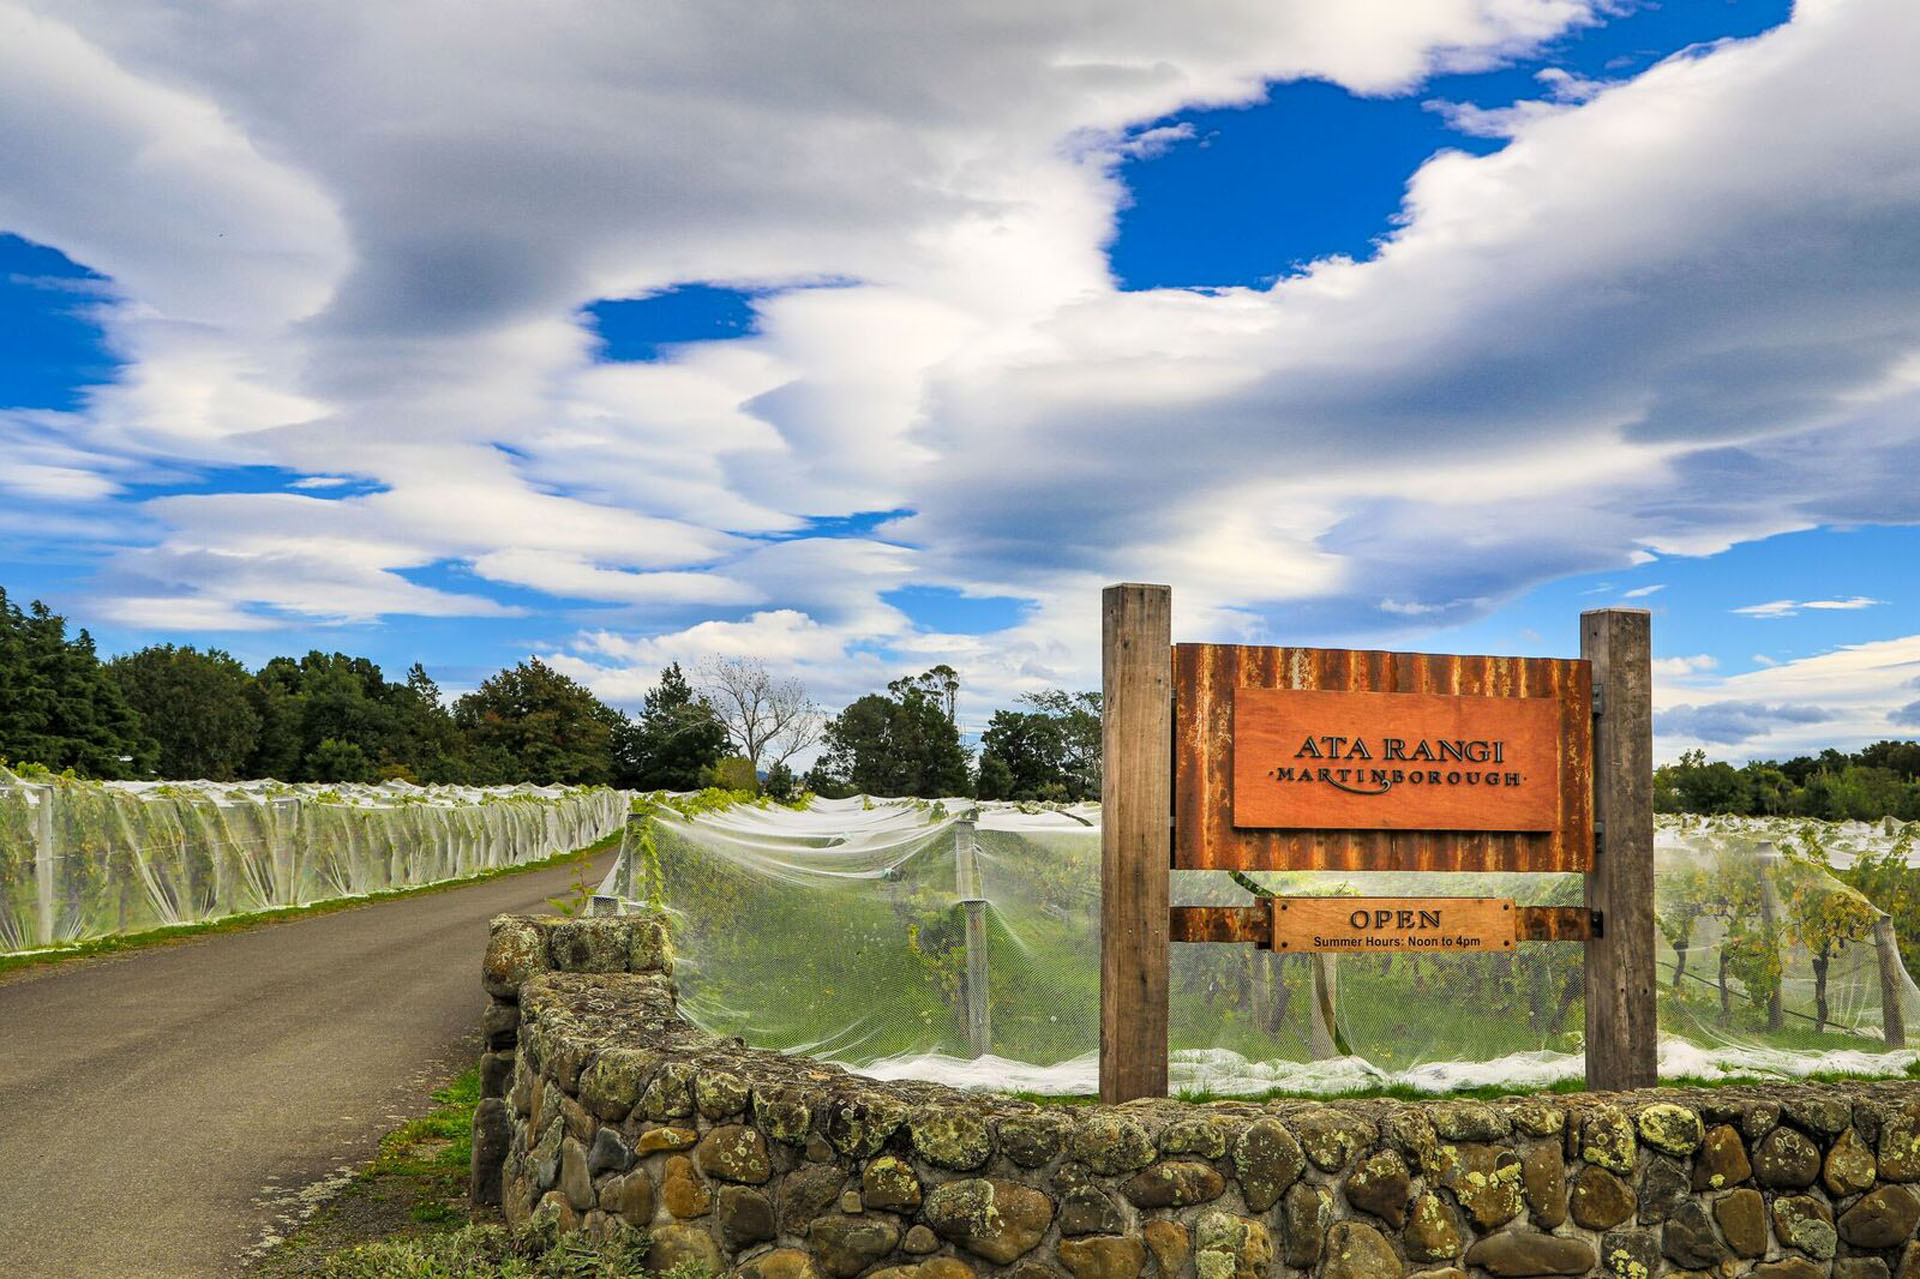 Like most New Zealand wineries, superstar Ata Rangi nets its vineyards to prevent voracious, non-native birds from consuming the whole crop.